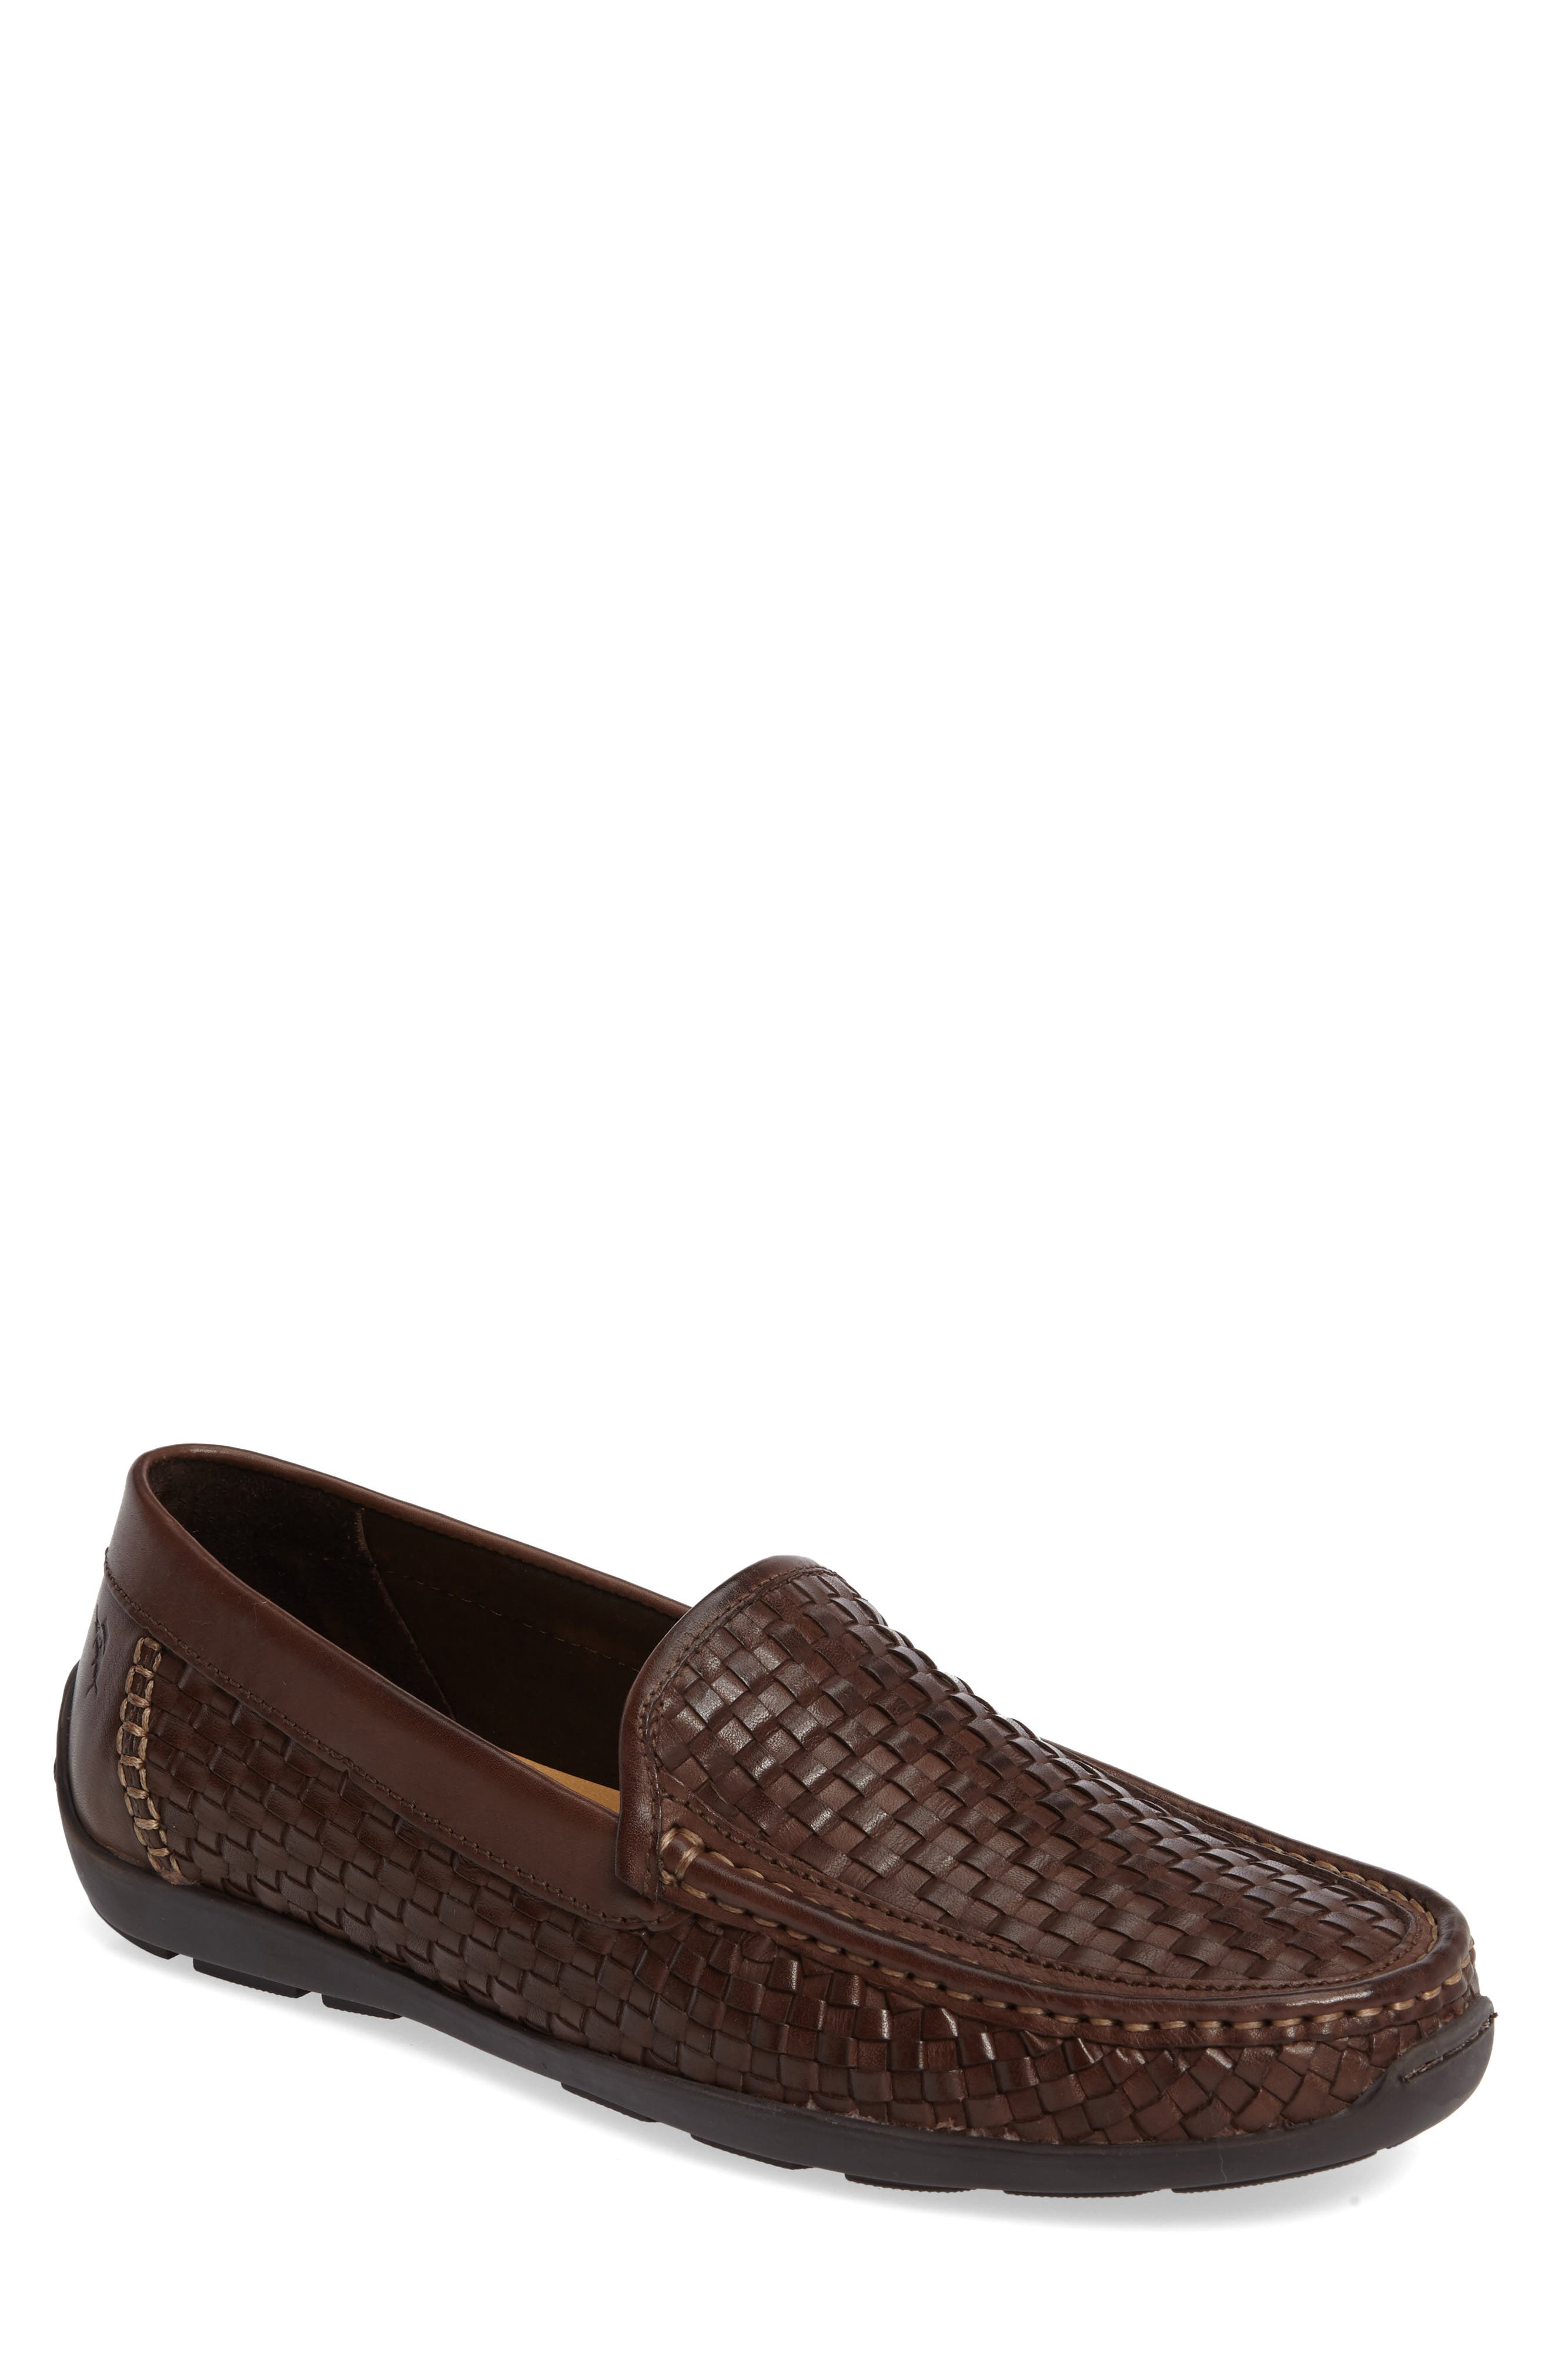 Orson Driving Shoe,                             Main thumbnail 1, color,                             Dark Brown Leather